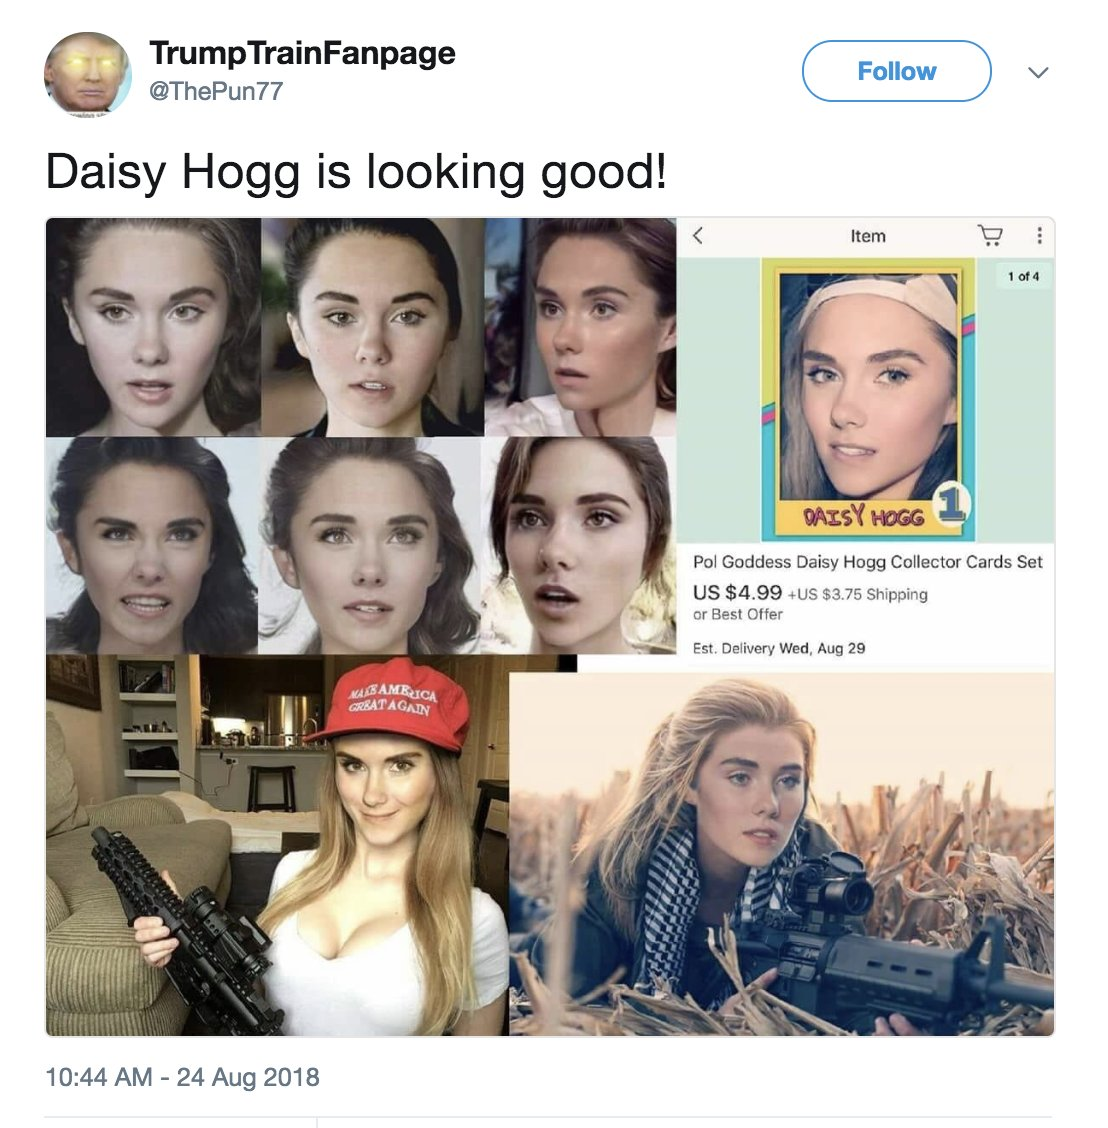 4chan nerds are photoshopping David Hogg to look female, calling him Daisy, and then having sexual fantasies about their Daisy Hogg memes. I feel like this is some... new, uncharted form of self-own